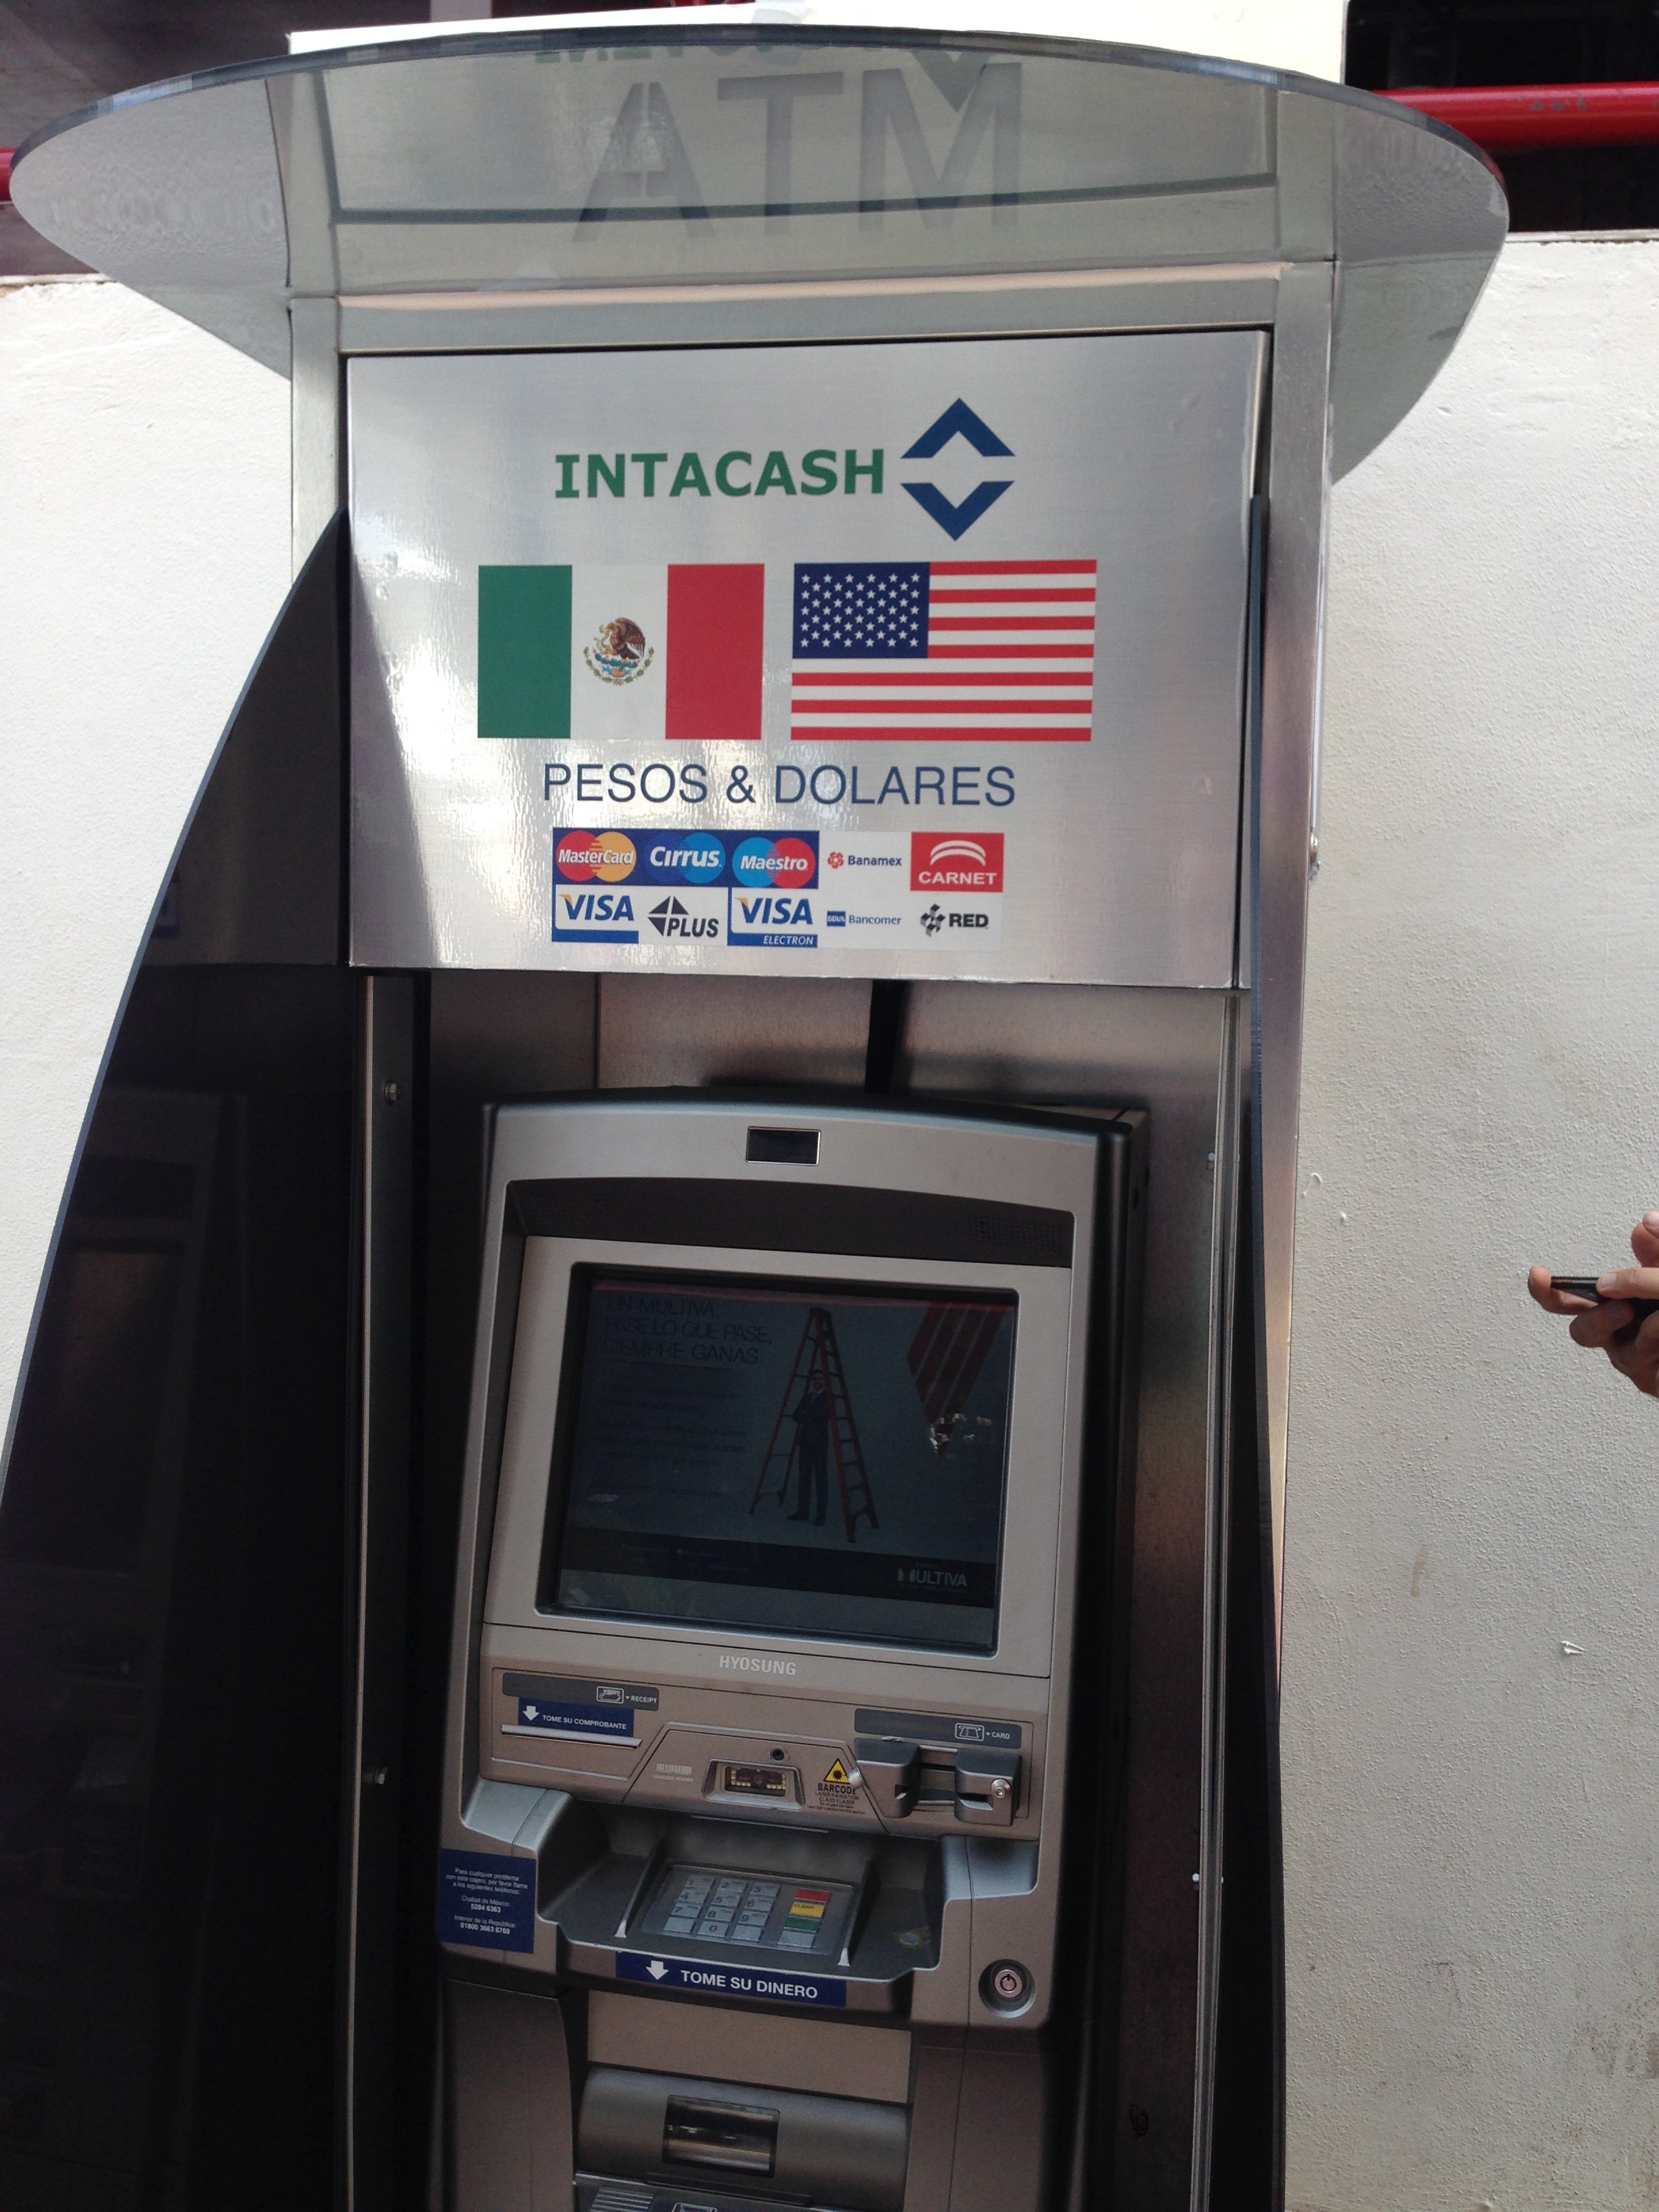 Whos Behind Bluetooth Skimming In Mexico Krebs On Security Wiring Money Rbc Intacash Atms Positively Blanket Downtown Cancun